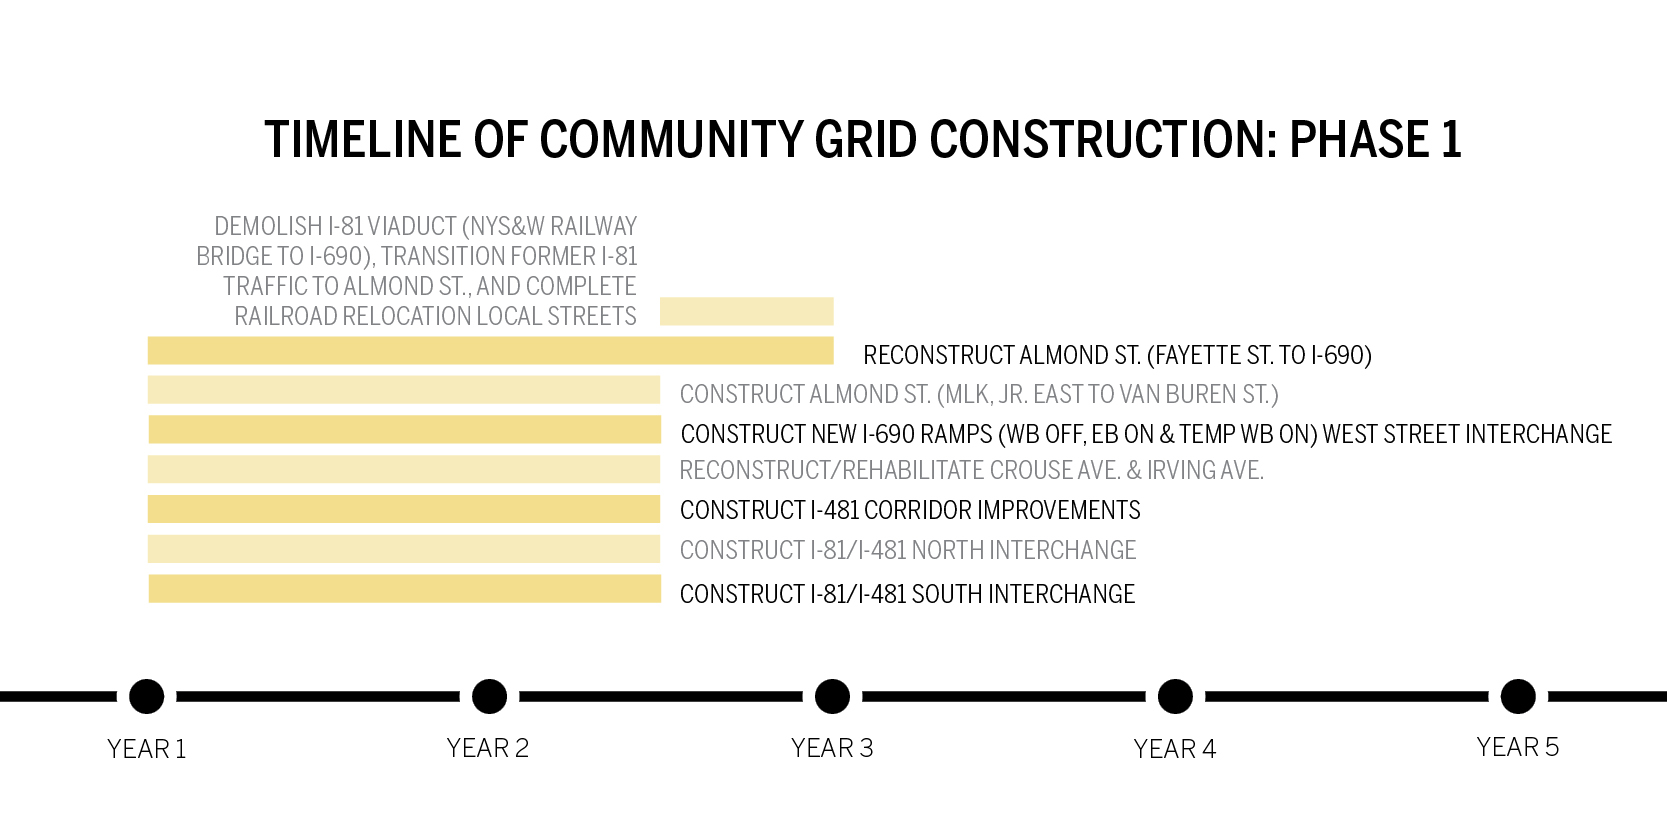 Community grid construction to take 5 years - The Daily